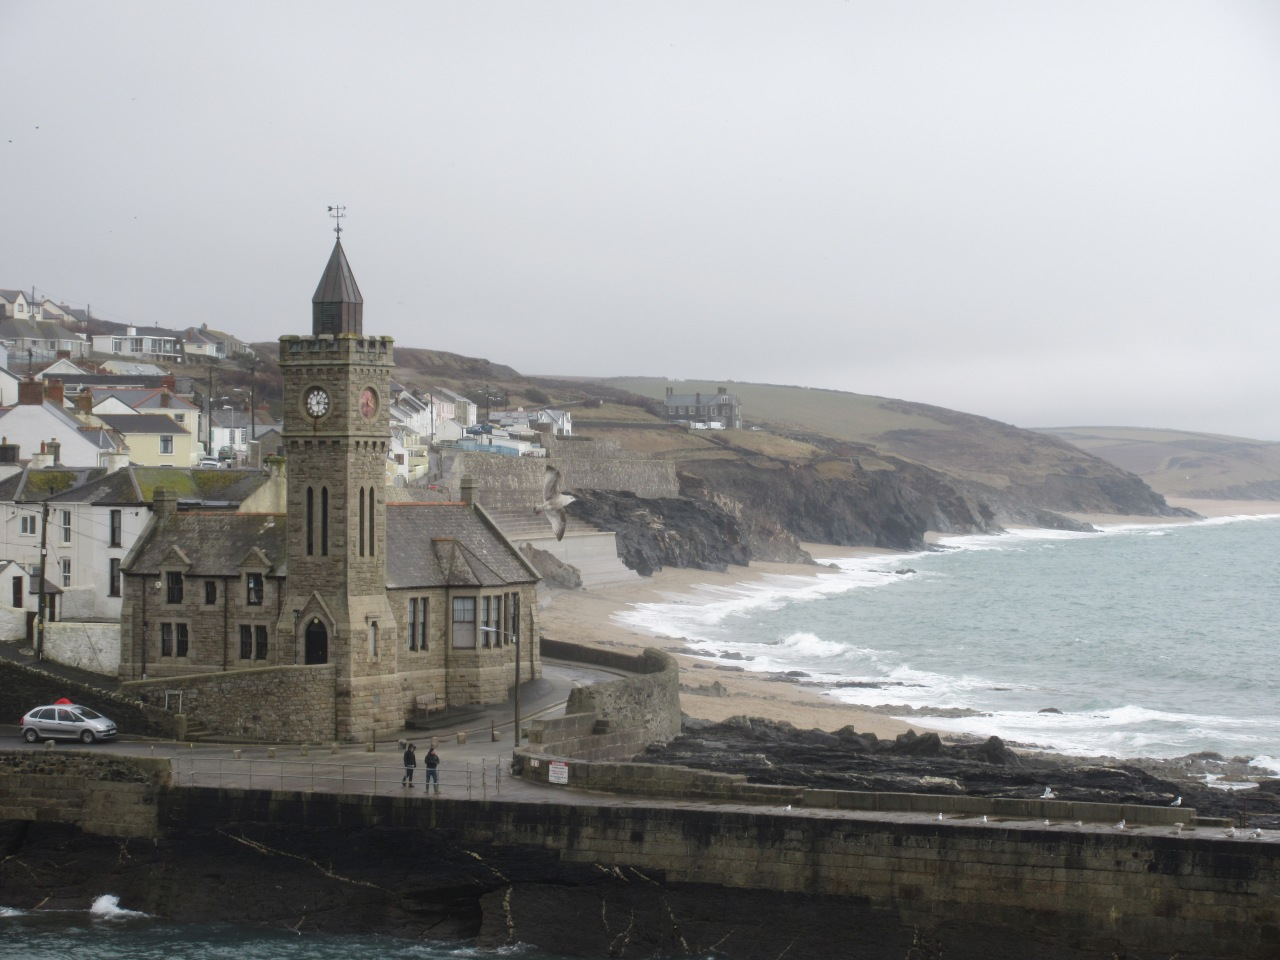 Porthleven: South Cornwall's rising star